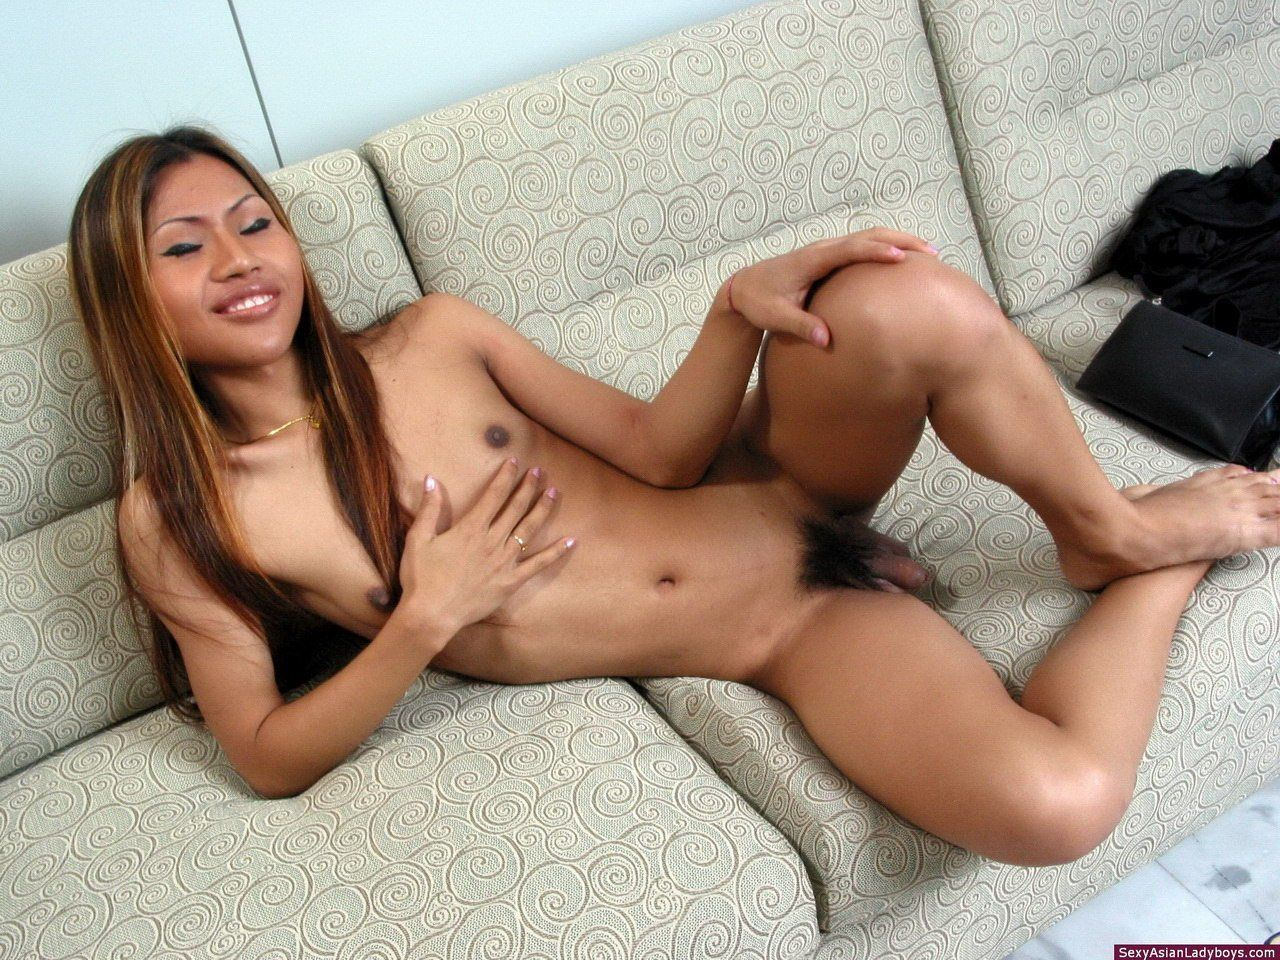 Black men fucking asian ladyboys tube